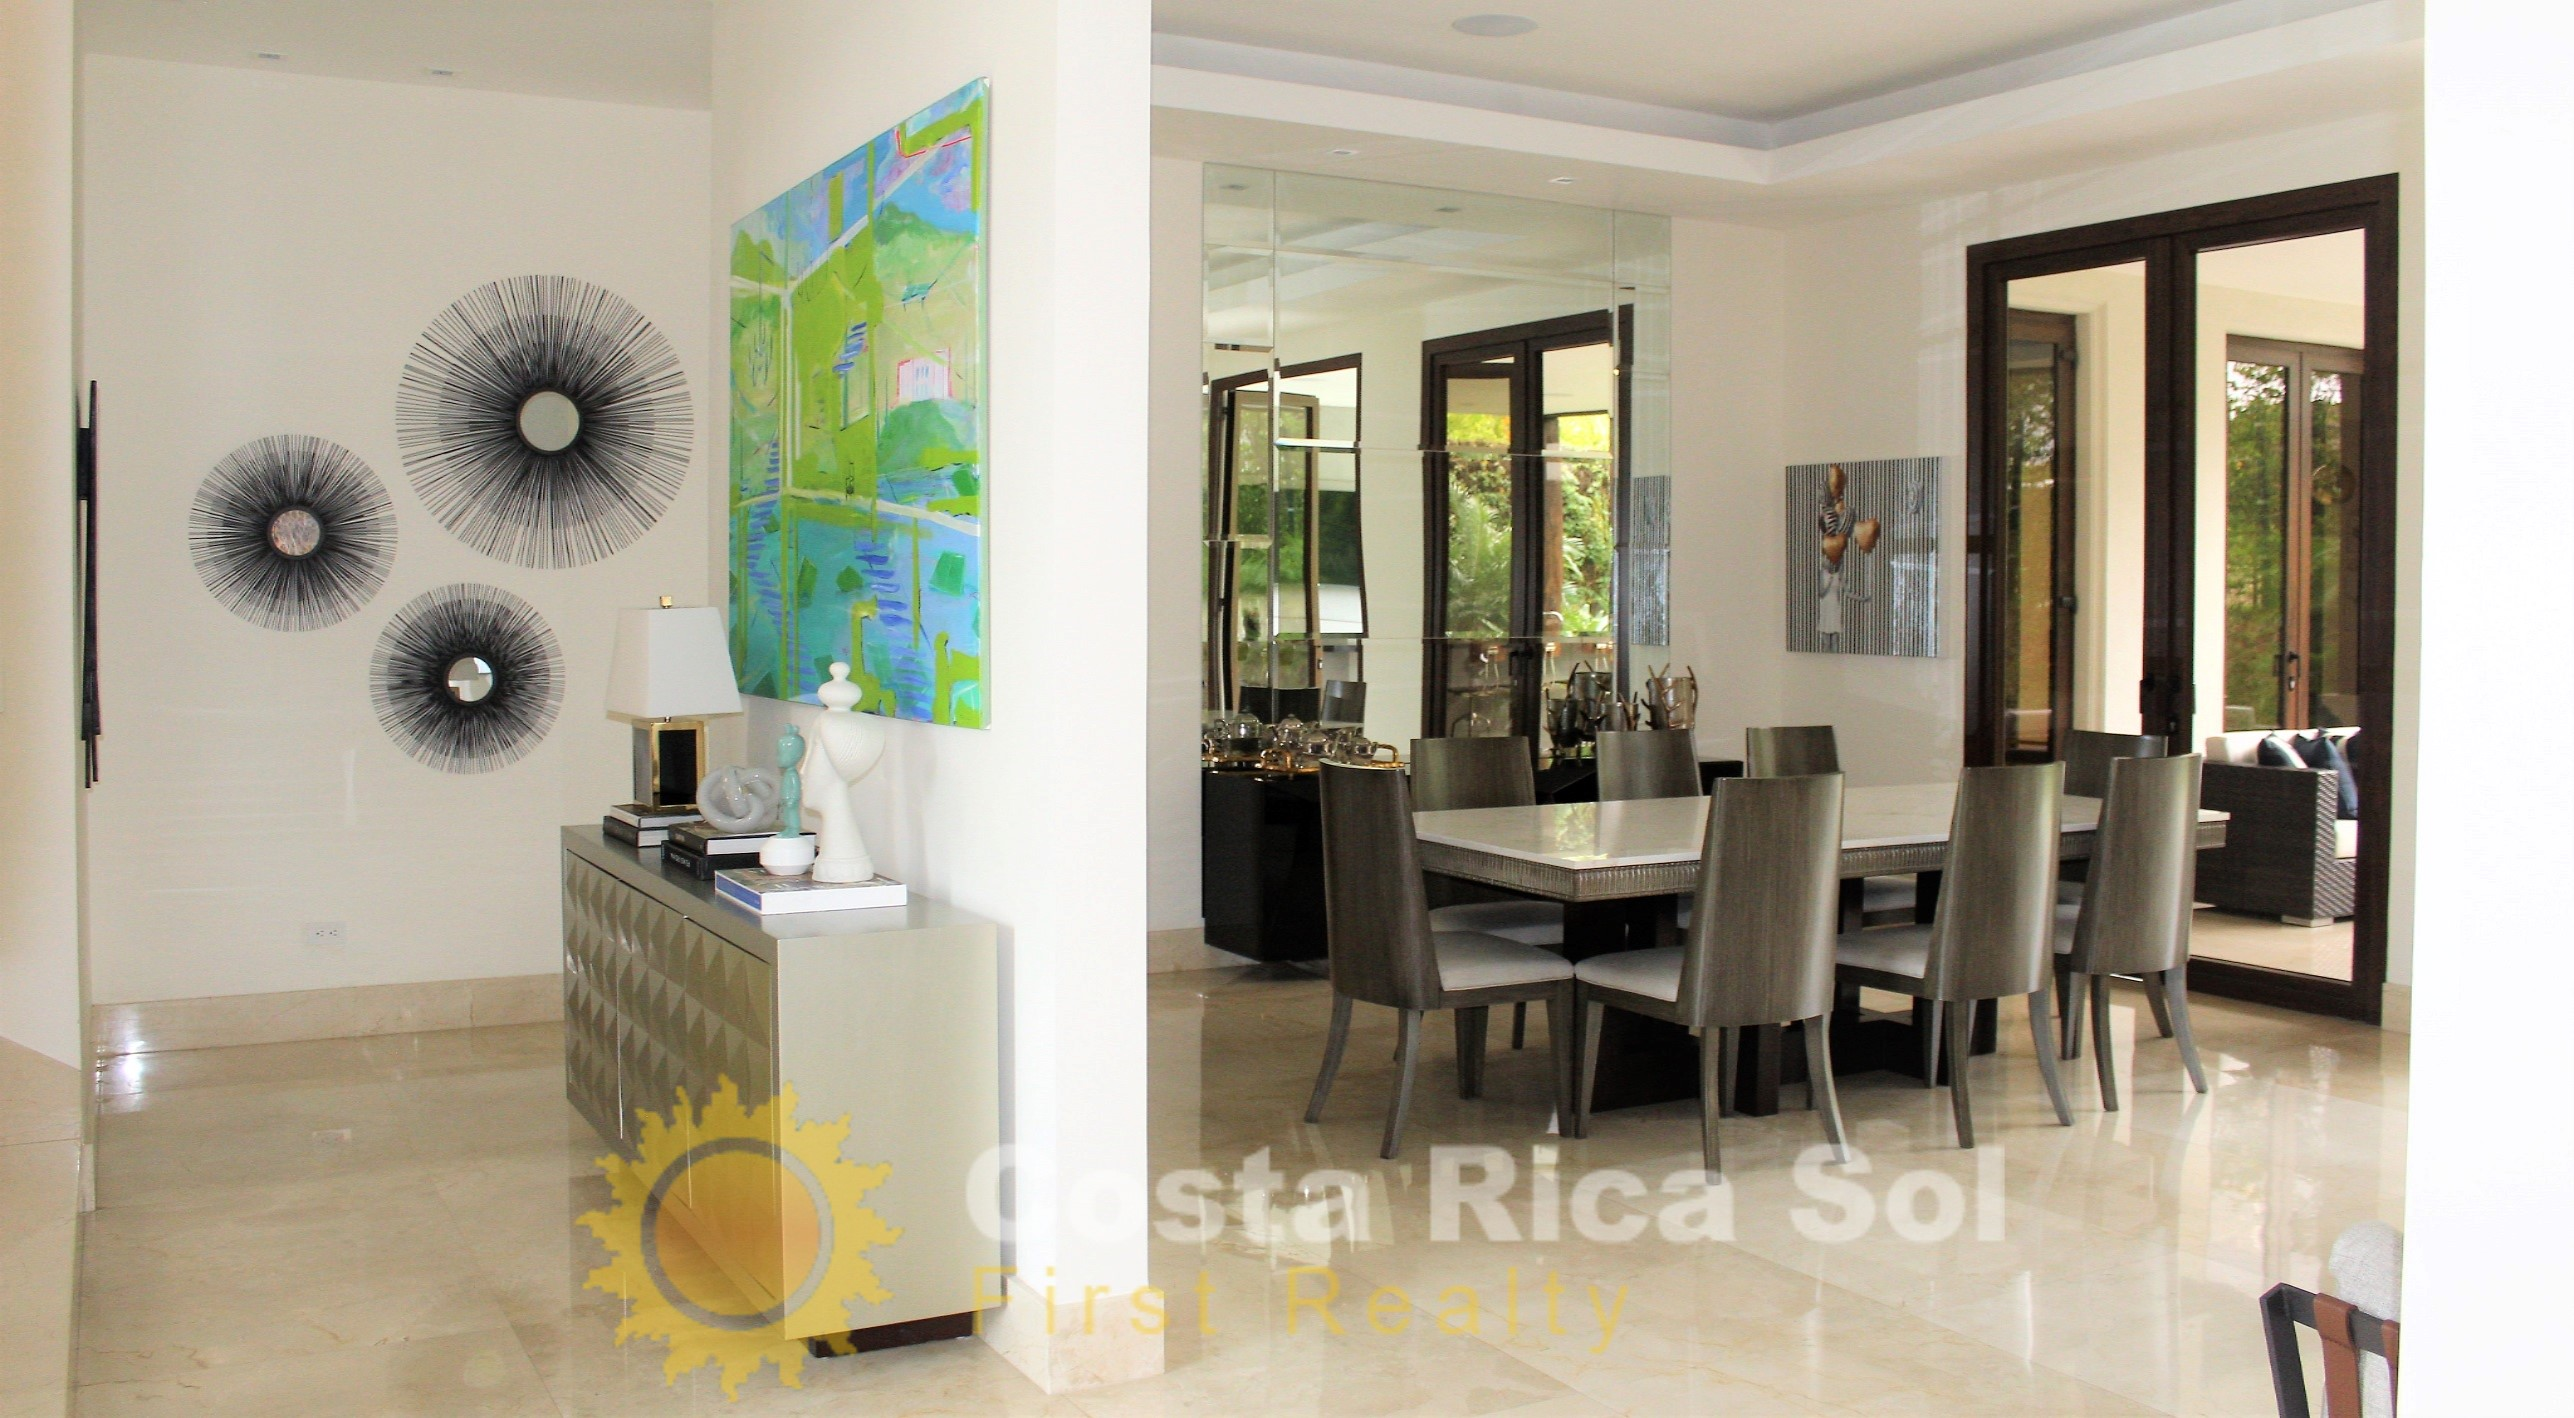 //costaricasol.com/images/jux_real_estate/realties/IMG_08711.jpg